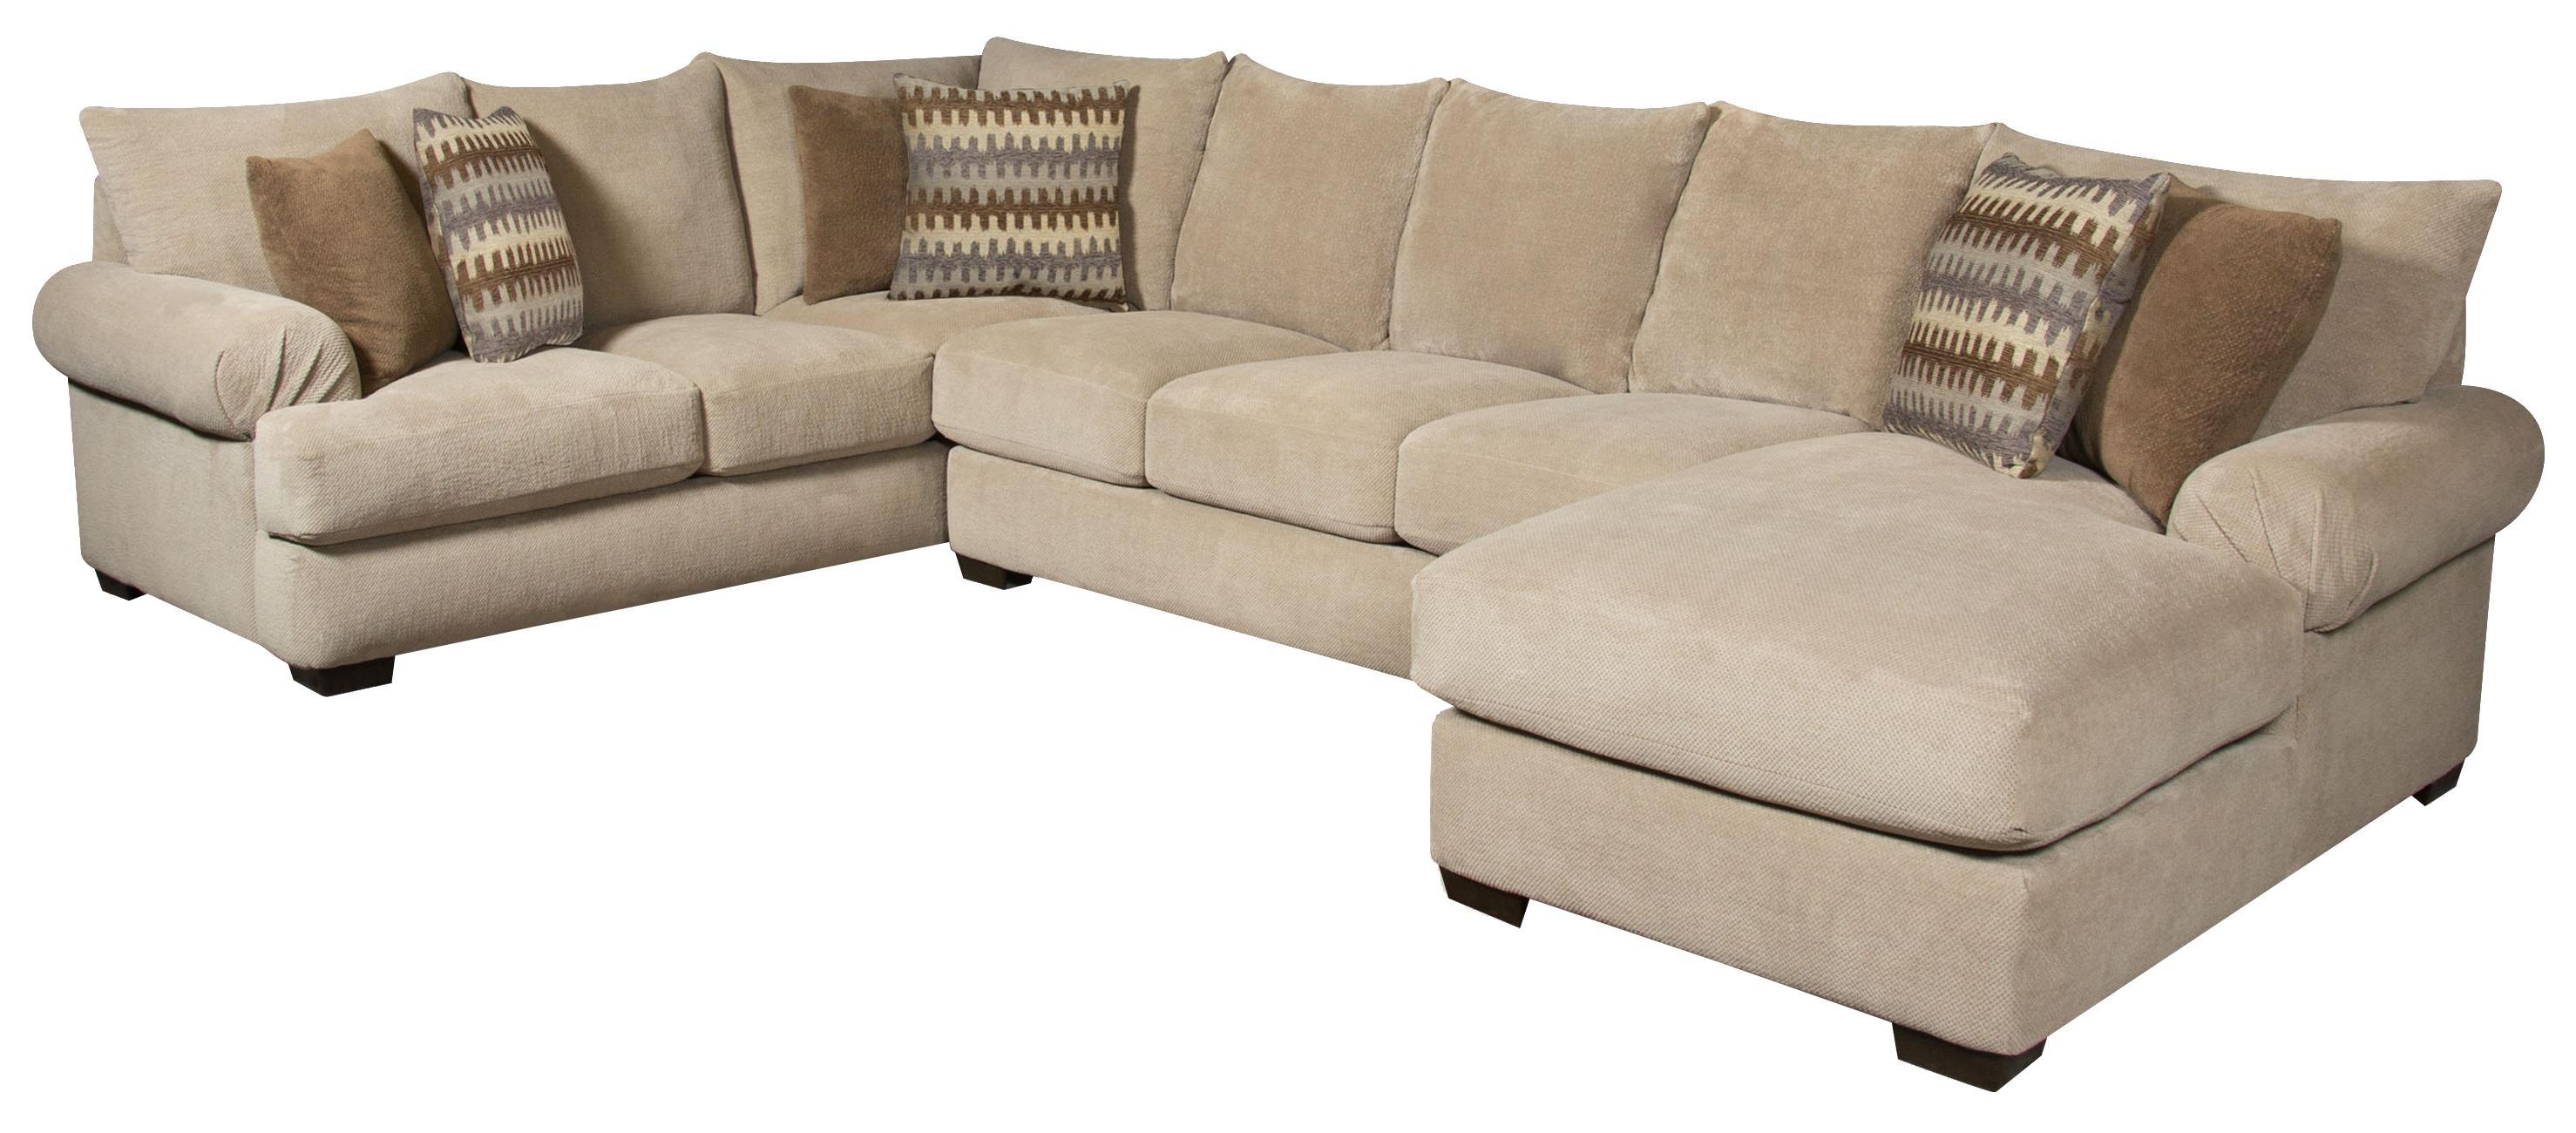 Corinthian Bacarat Taupe 3 Piece Sofa Sectional Great American For Corinthian Sectional Sofas (#3 of 12)